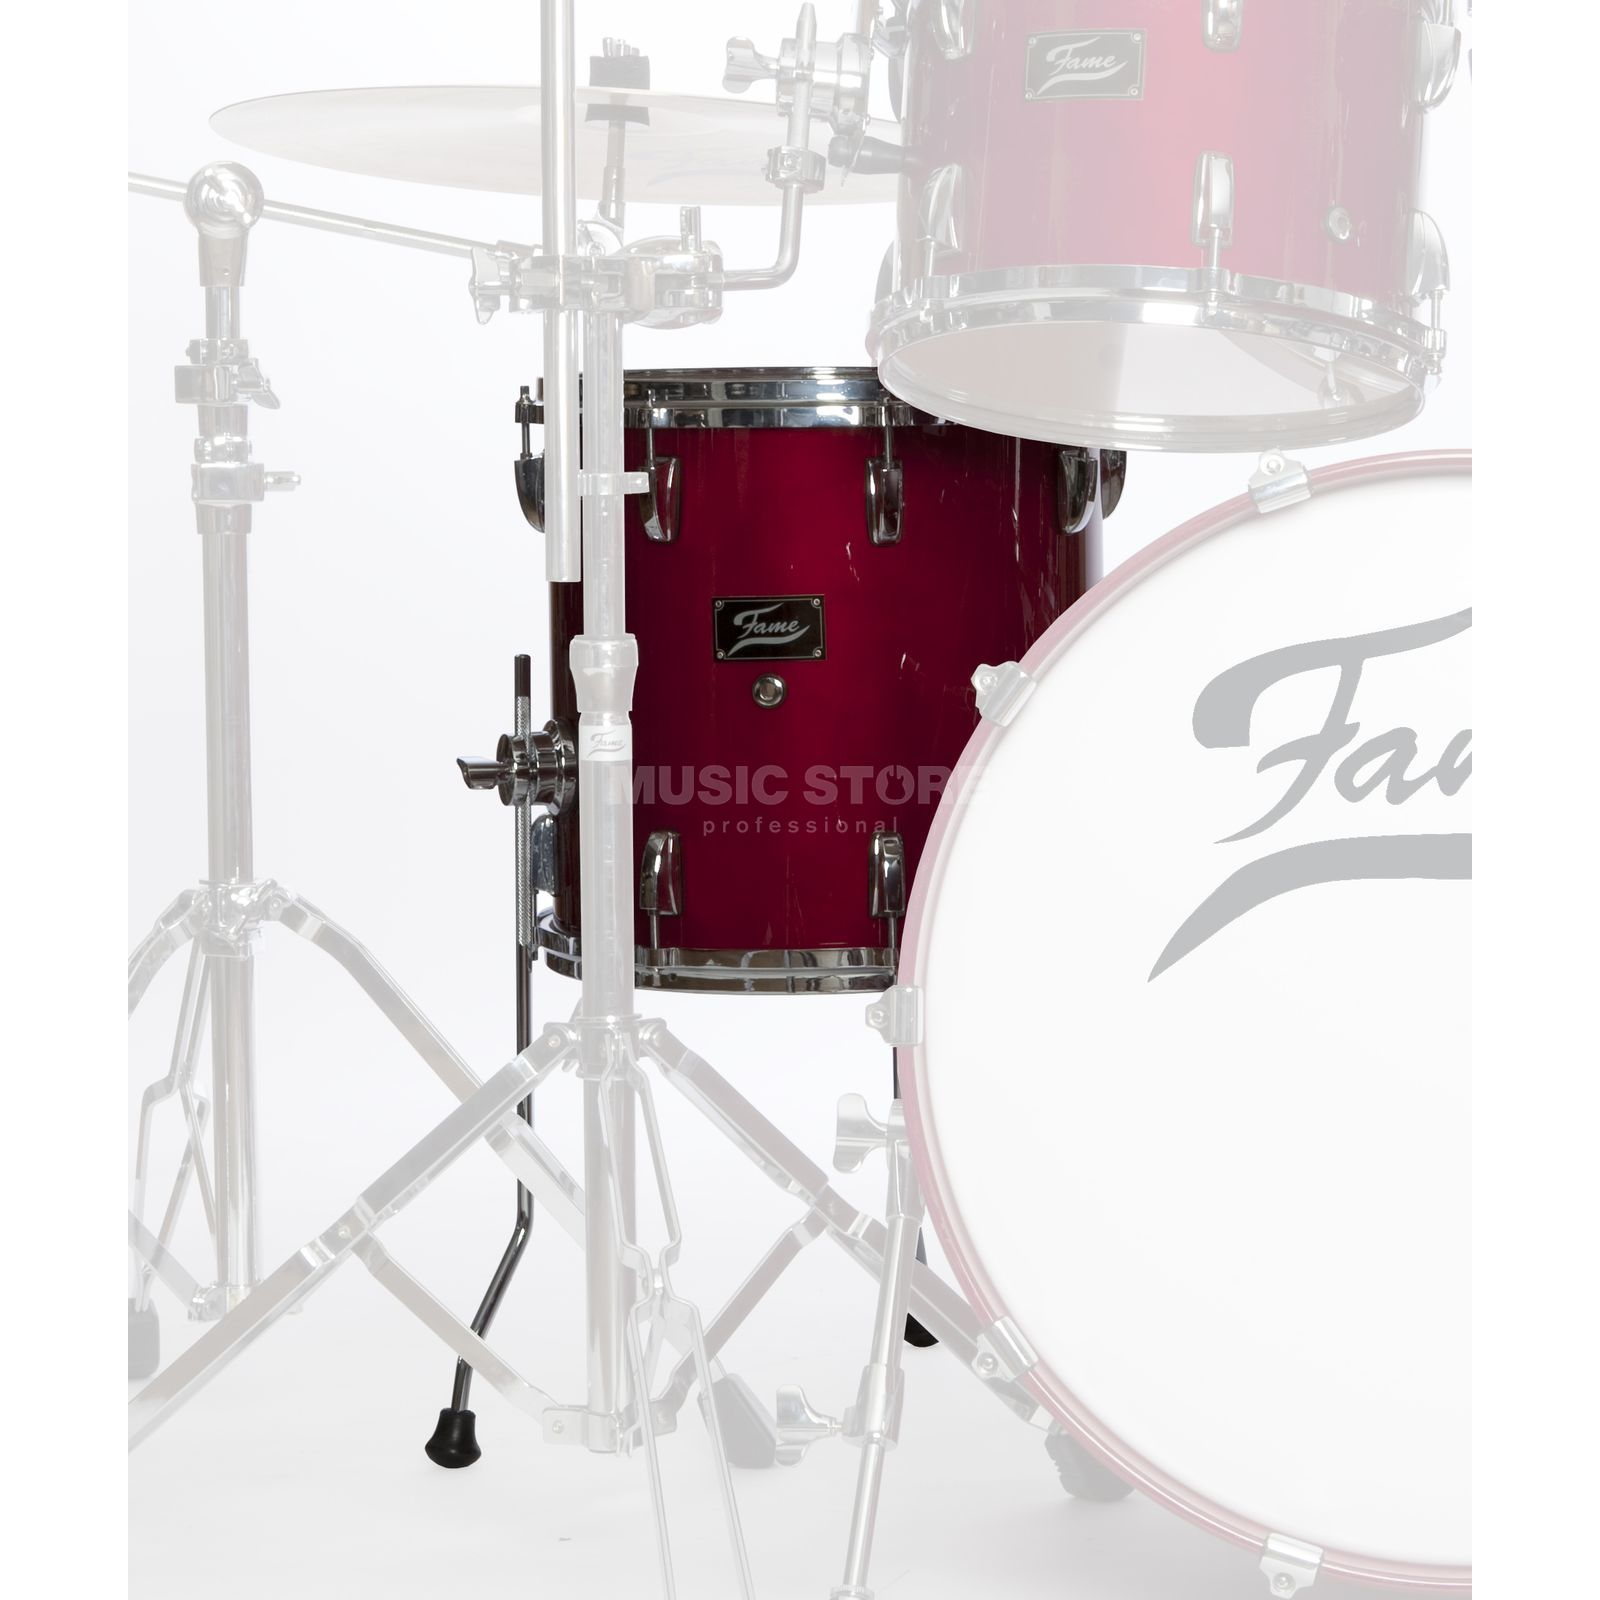 "Fame FMP FloorTom 16""x16"", #Cherry rood Productafbeelding"